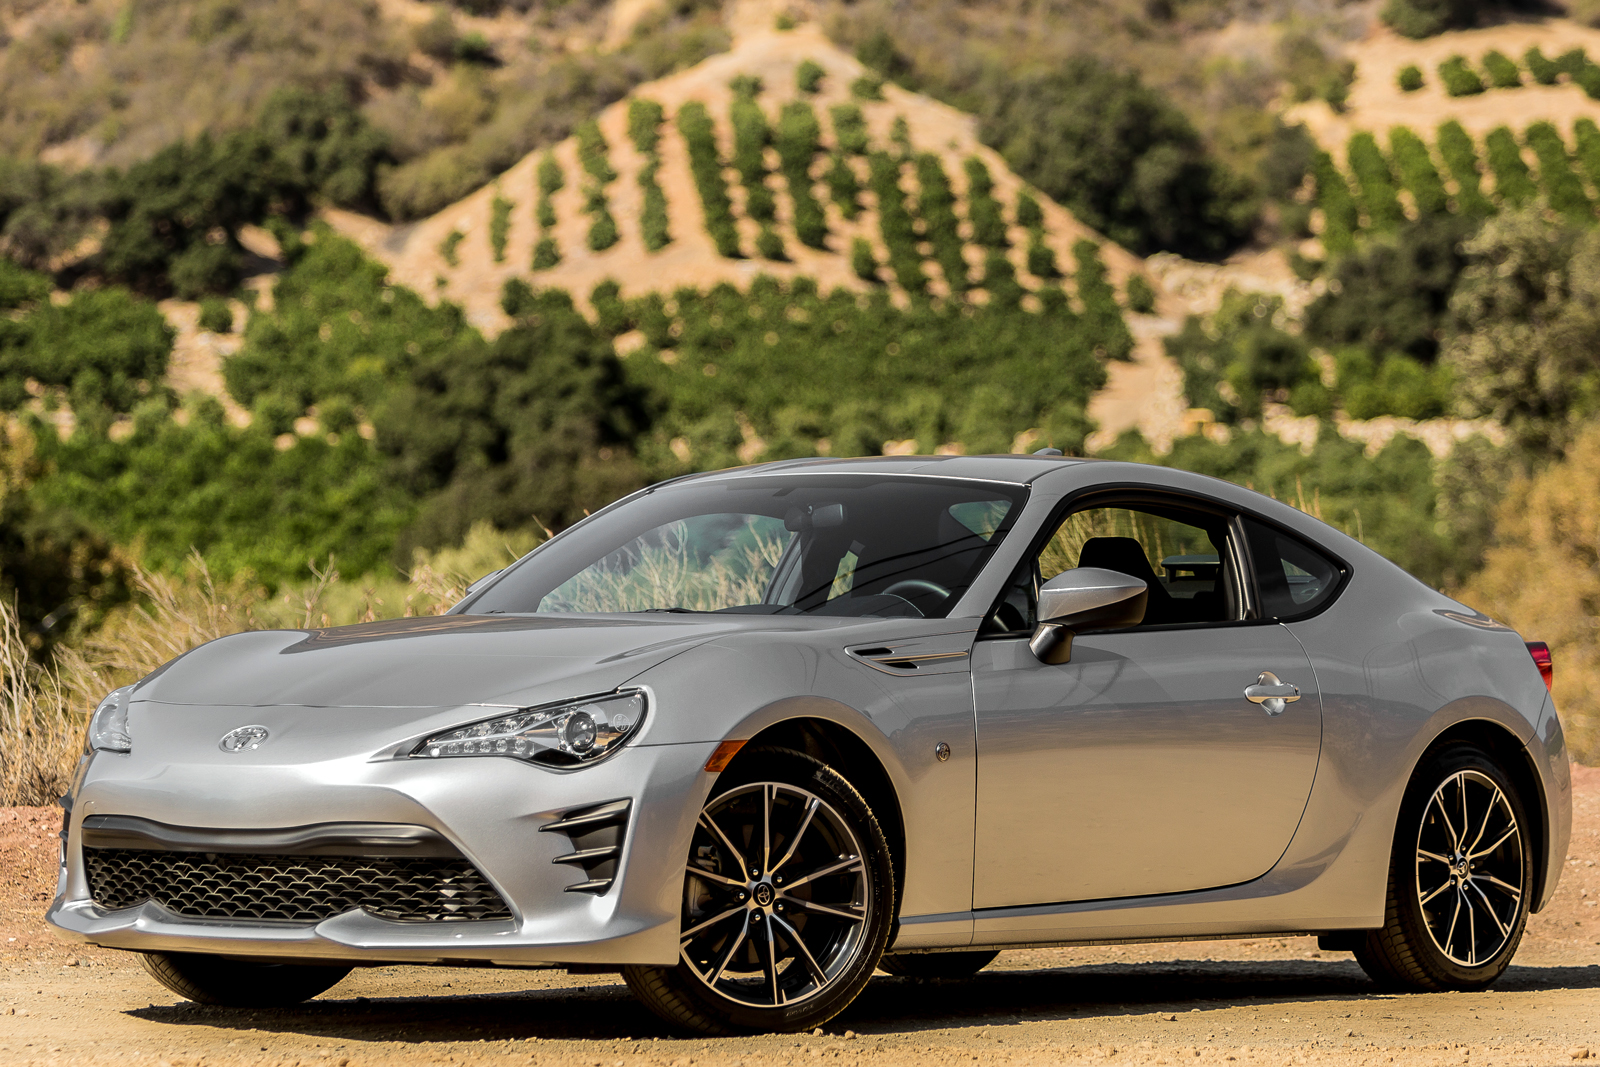 Cheap Car Tires >> 2017 Toyota 86 Review - AutoGuide.com